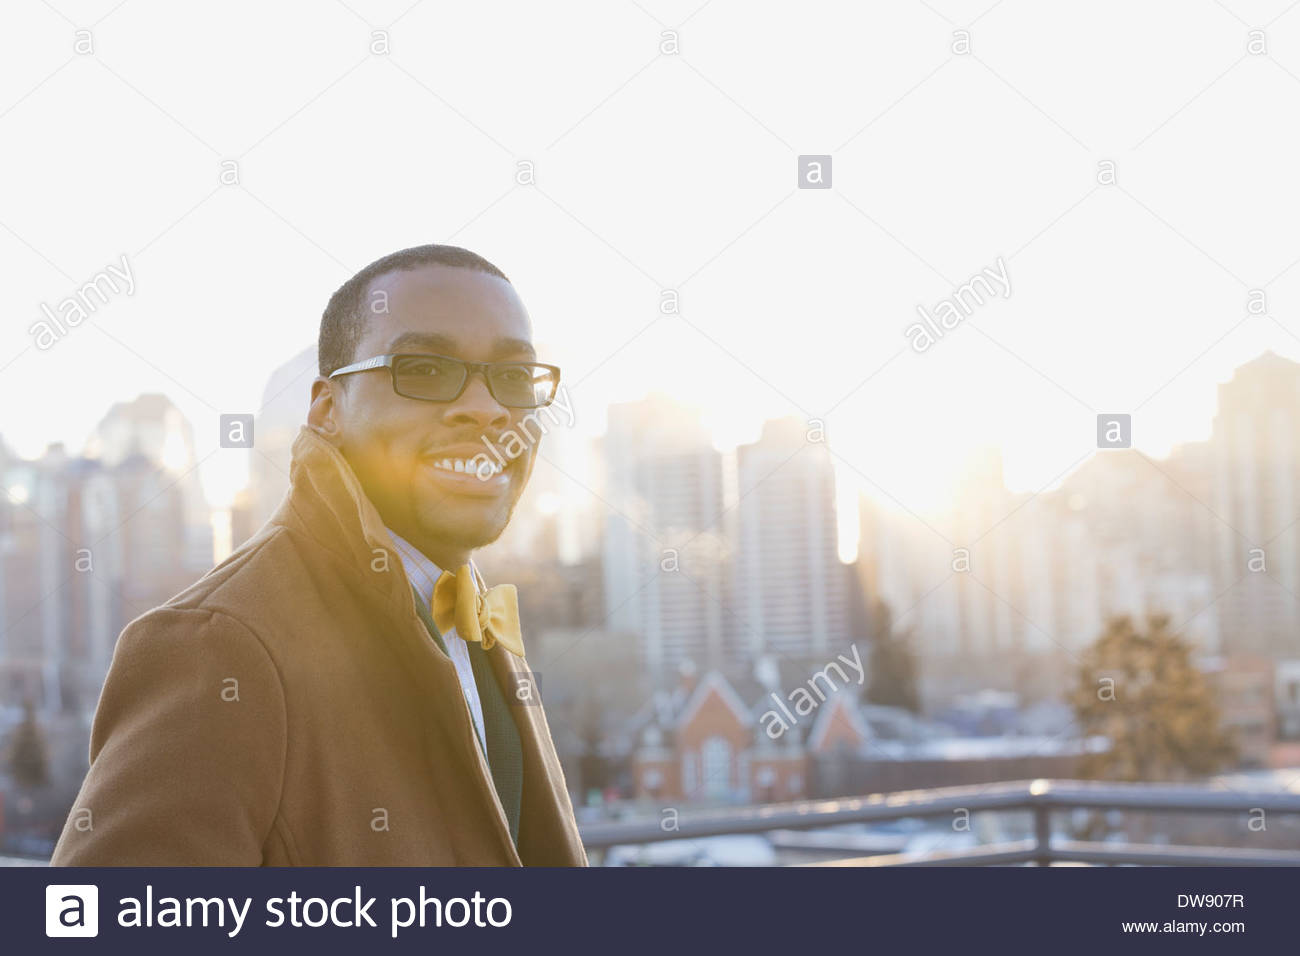 Portrait of smiling man against cityscape Photo Stock